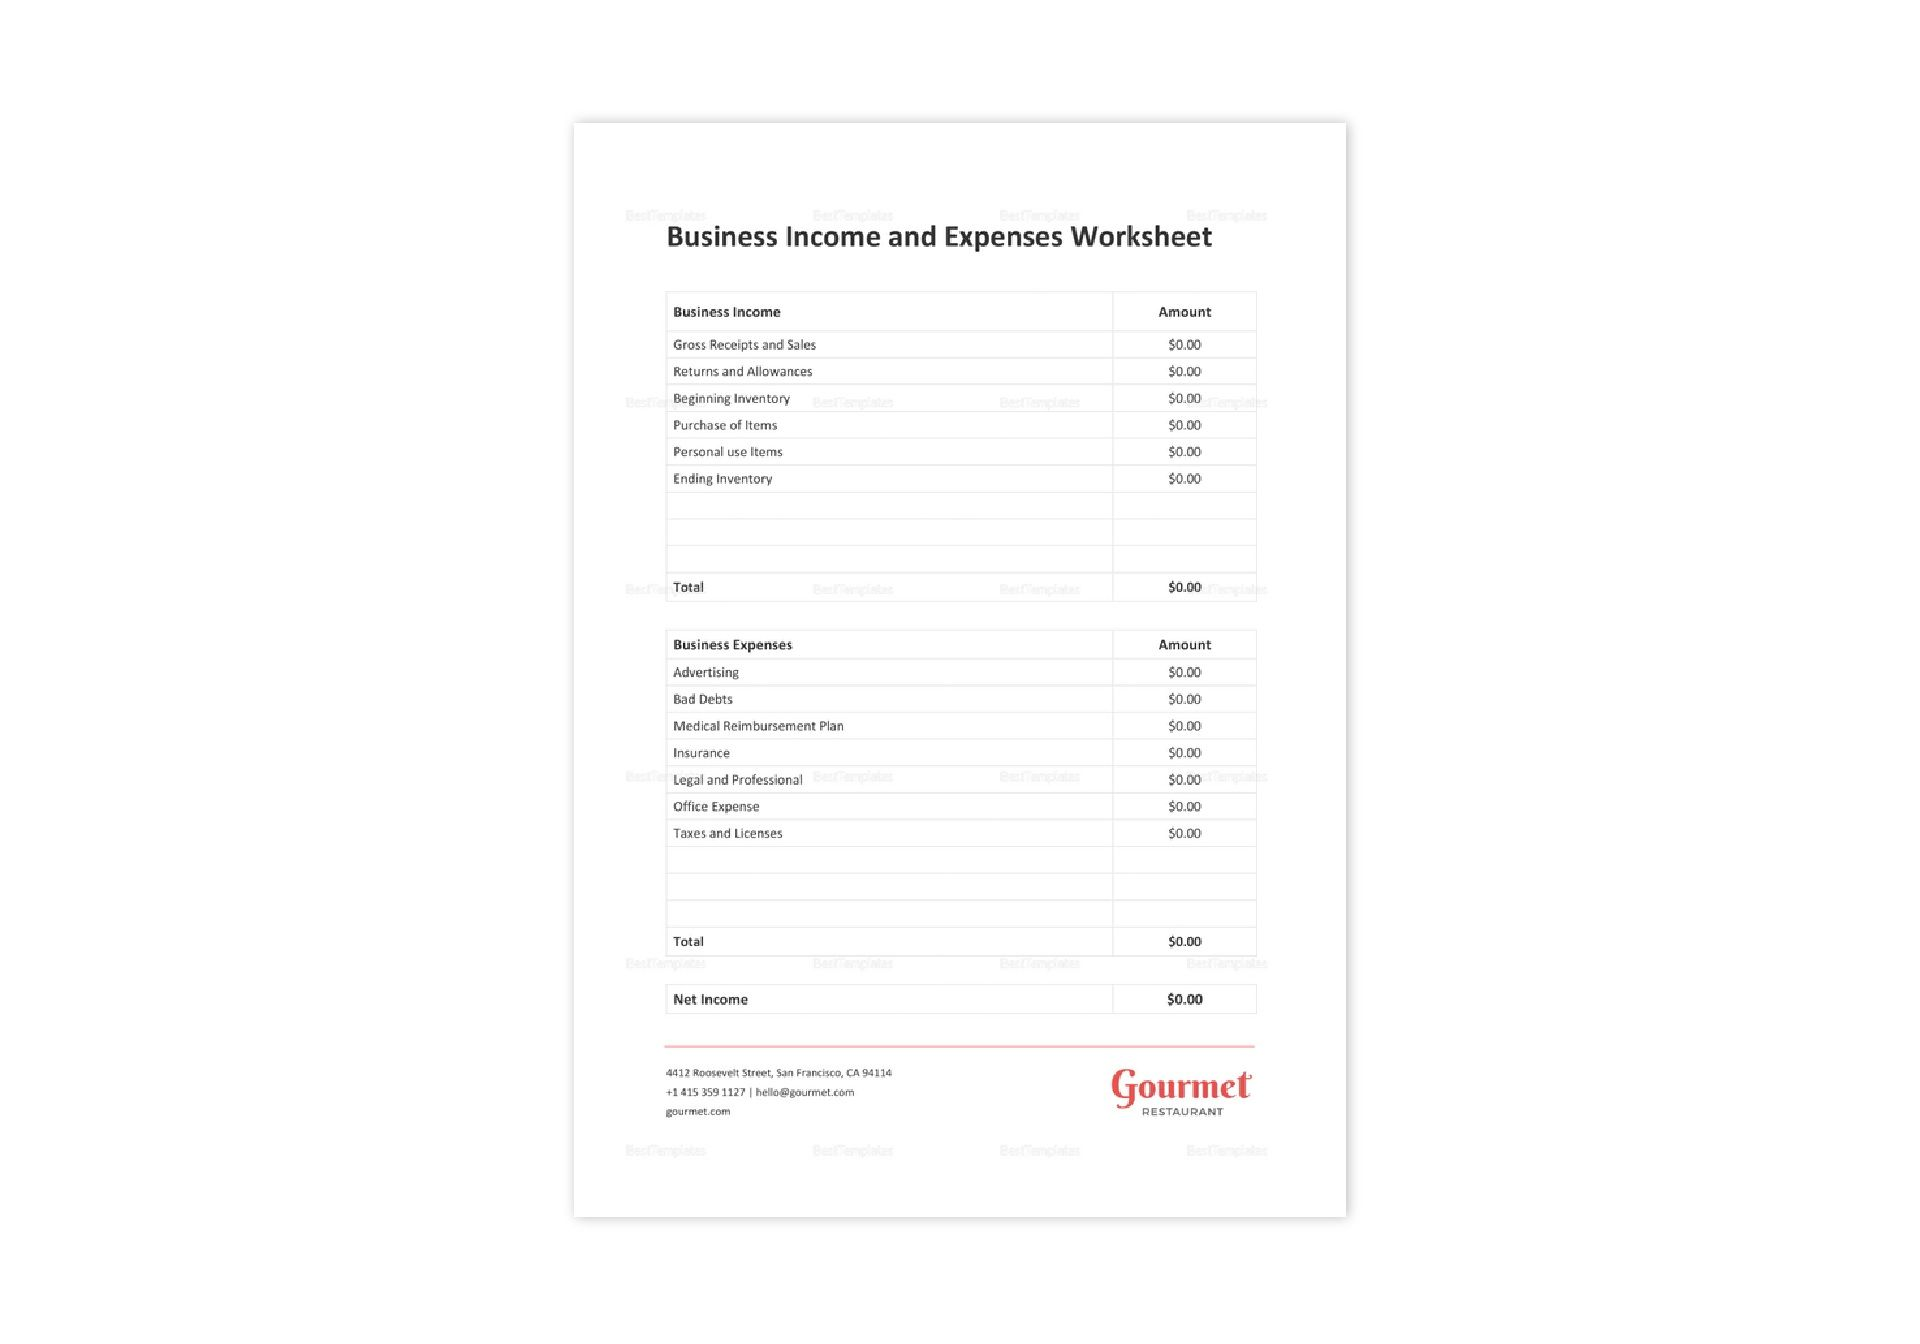 Restaurant Business Income Worksheet Template In Word